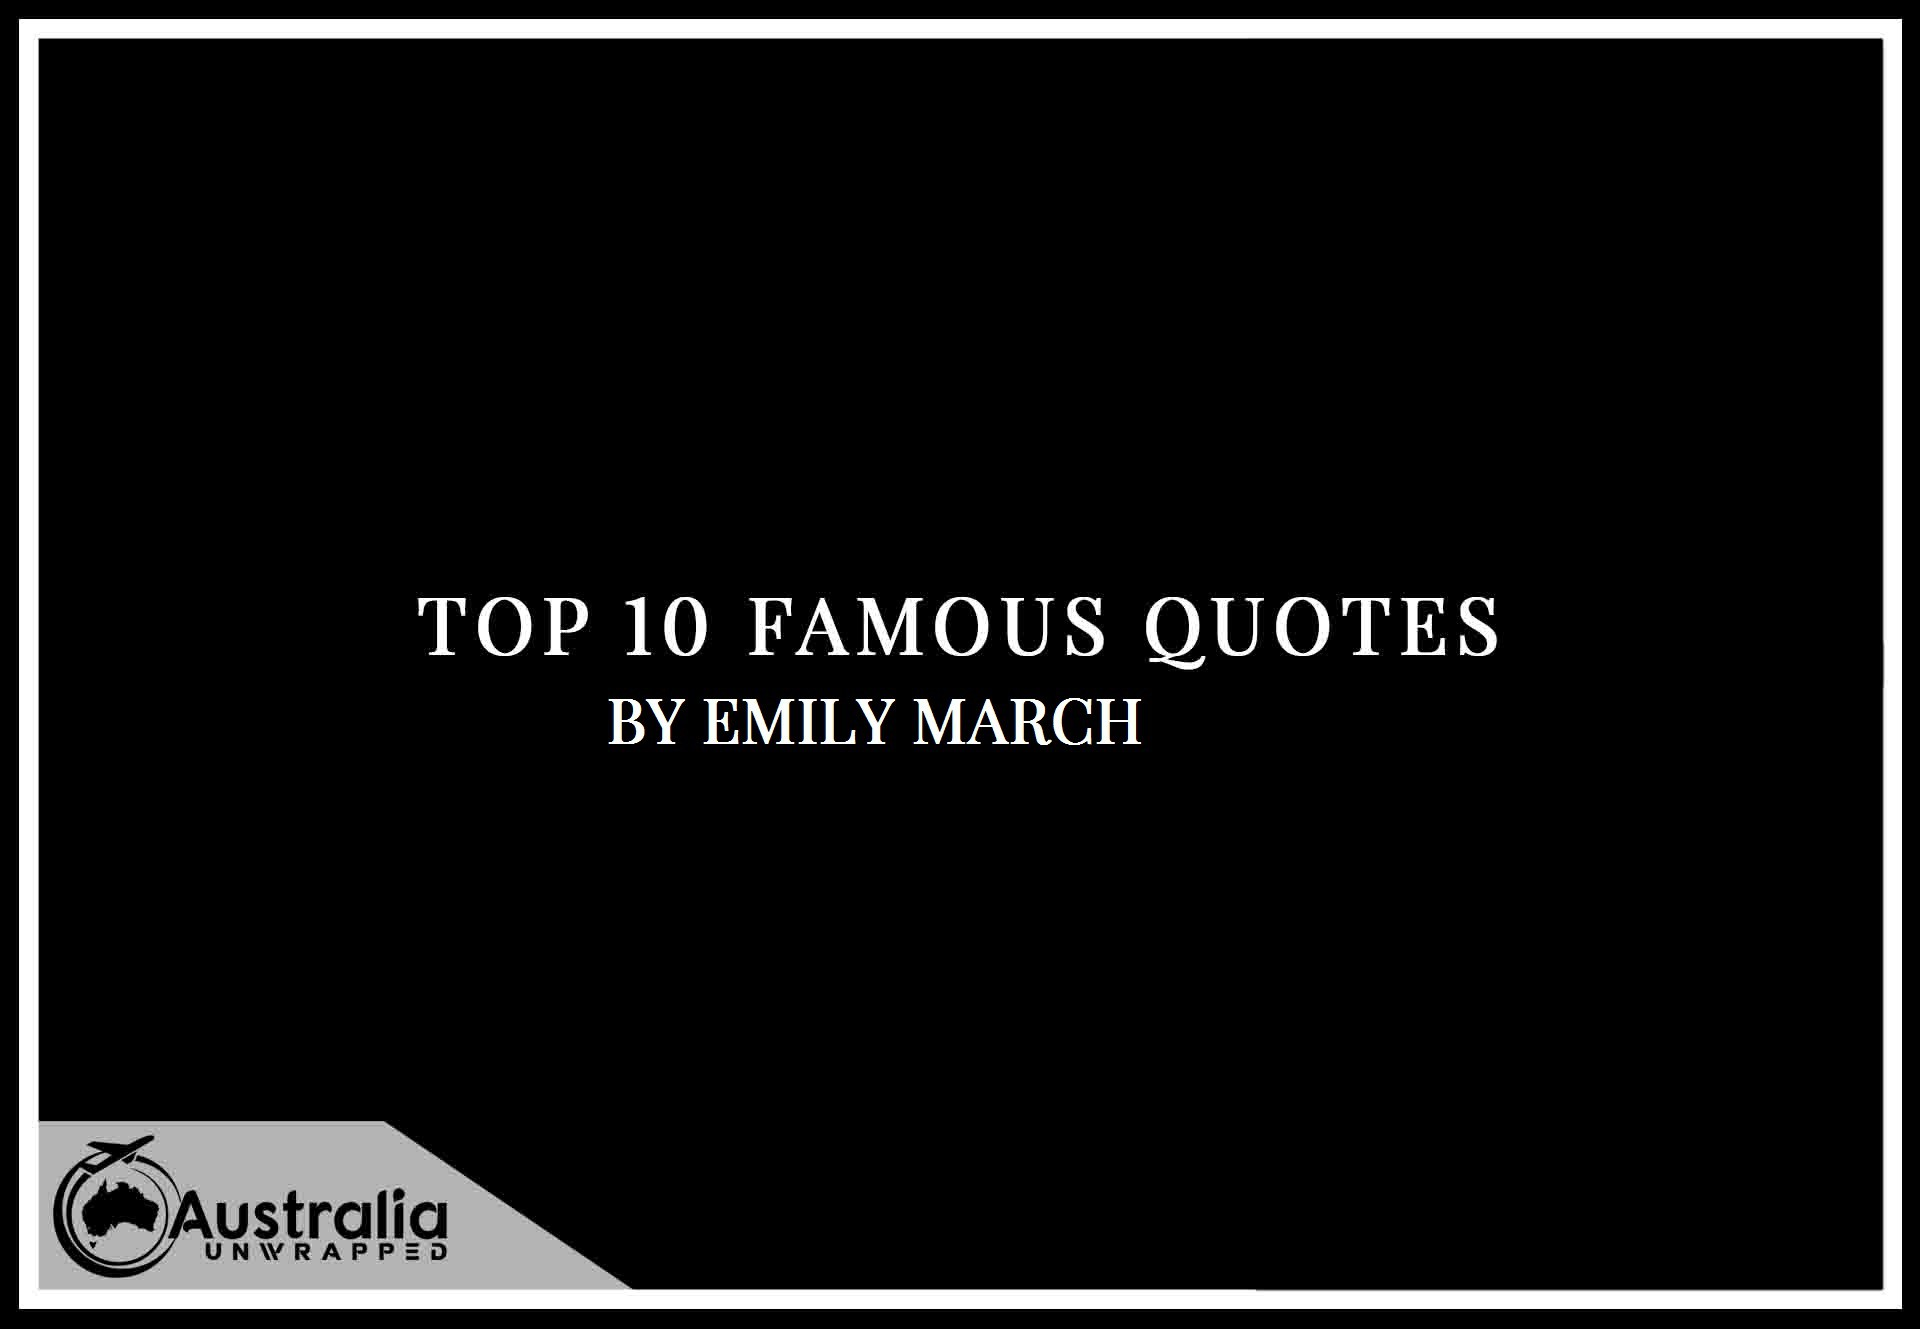 Emily March's Top 10 Popular and Famous Quotes